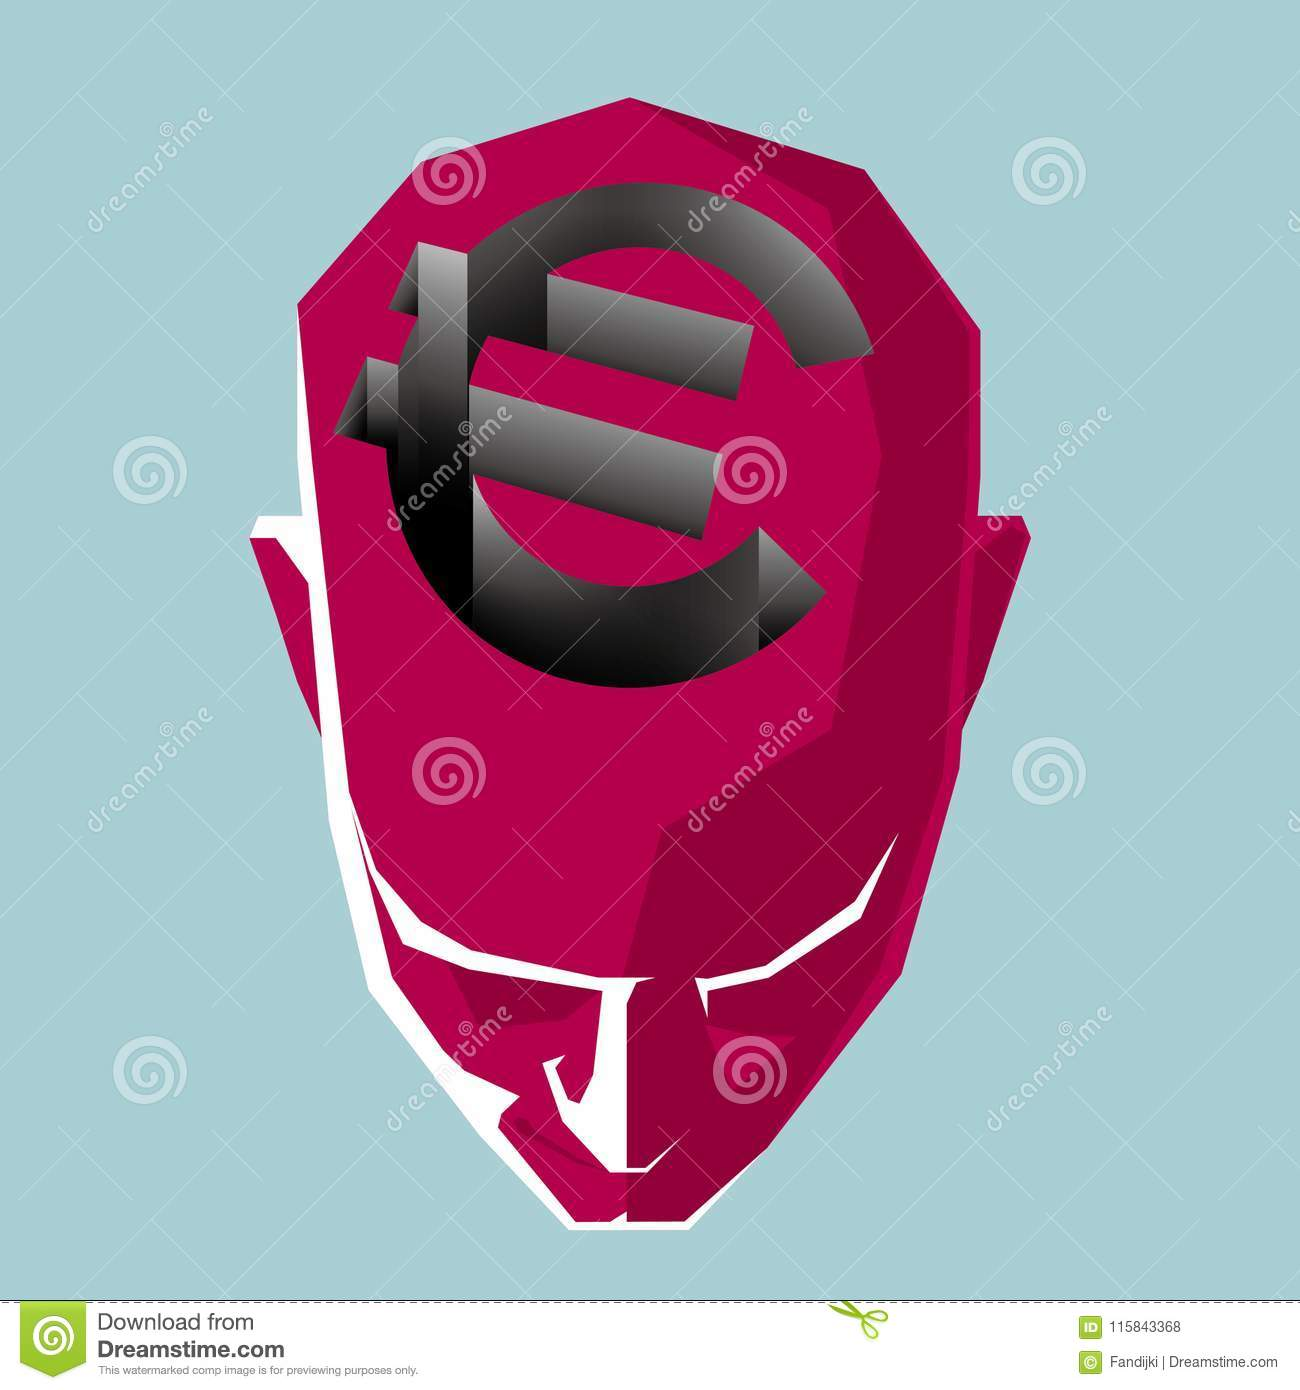 The Euro Symbol Above The Head Form A Trap Stock Vector